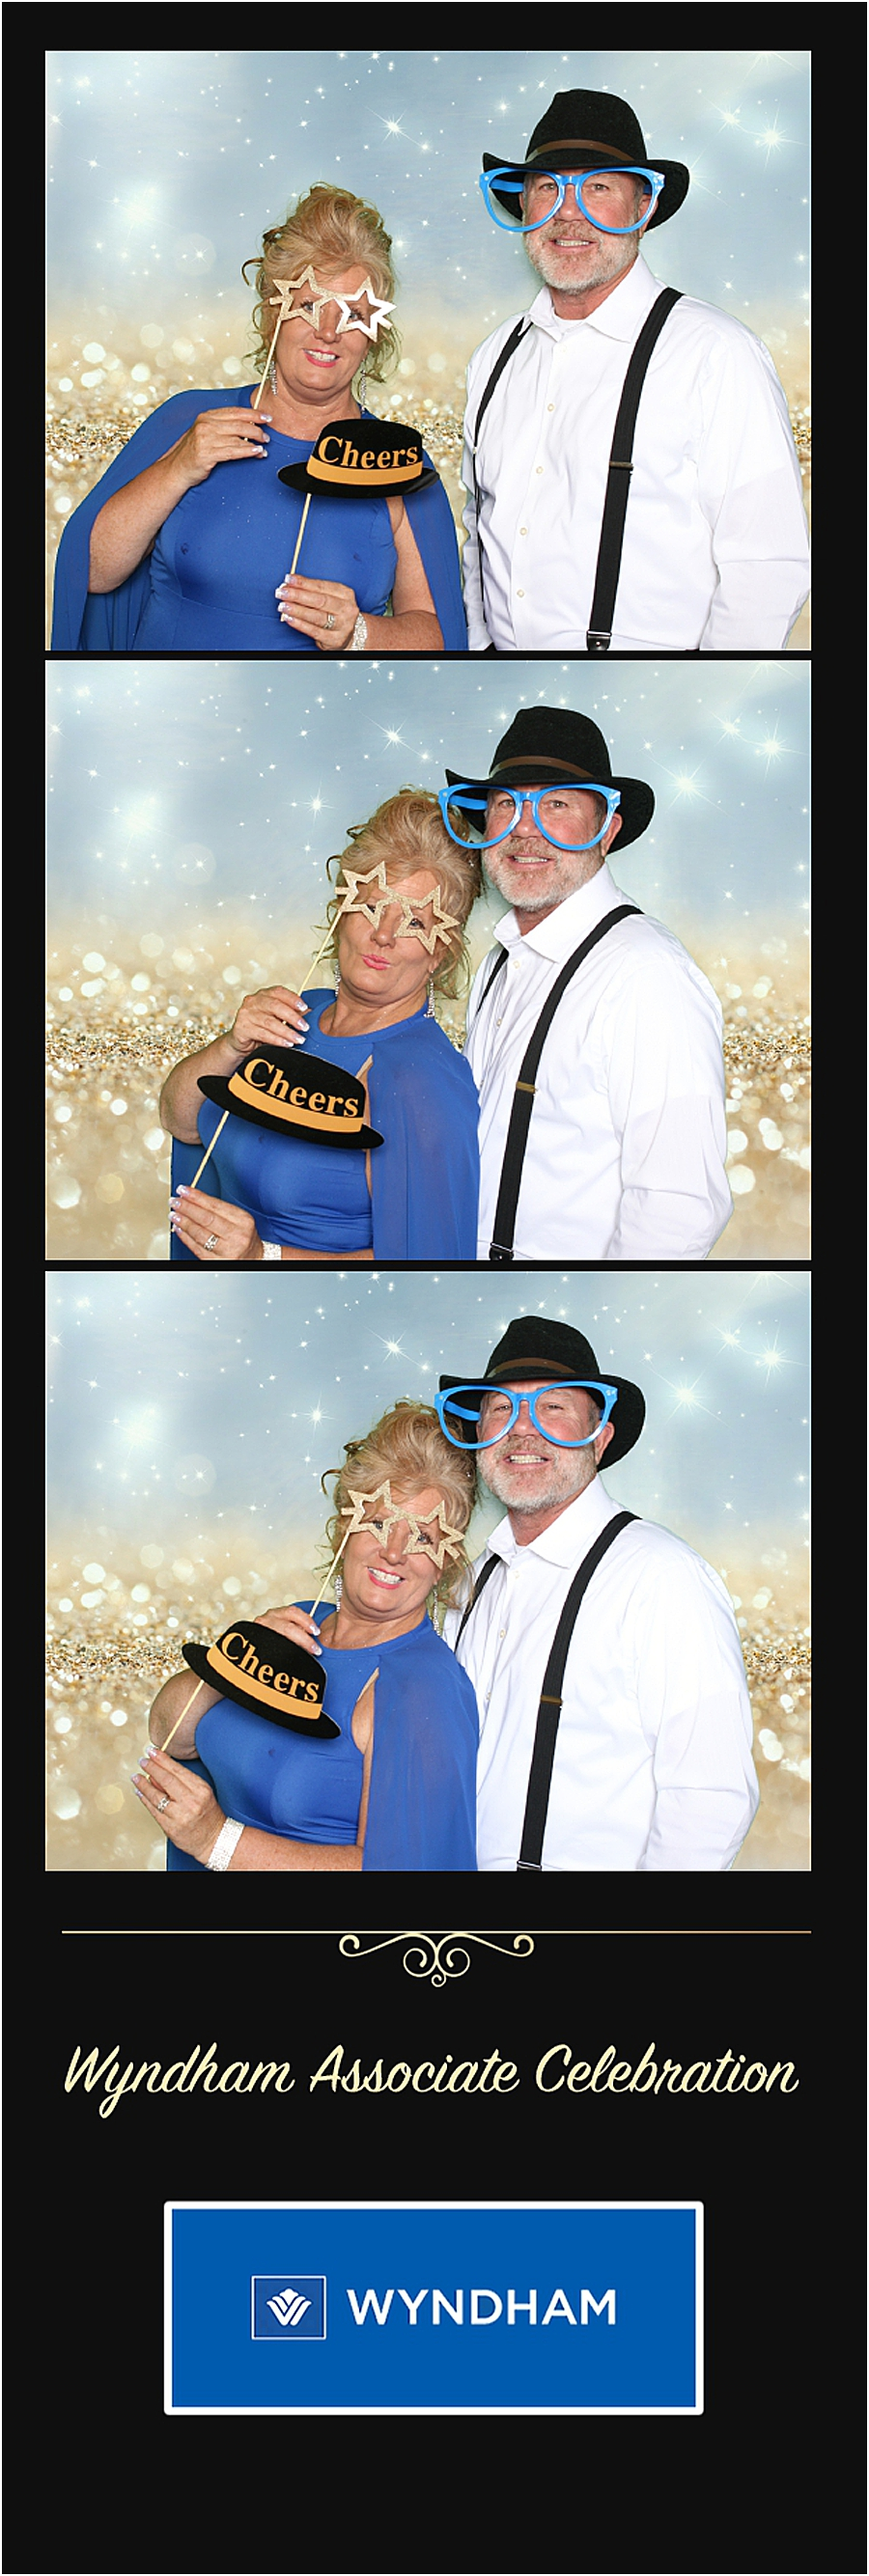 Knoxville Photo Booth_0903.jpg